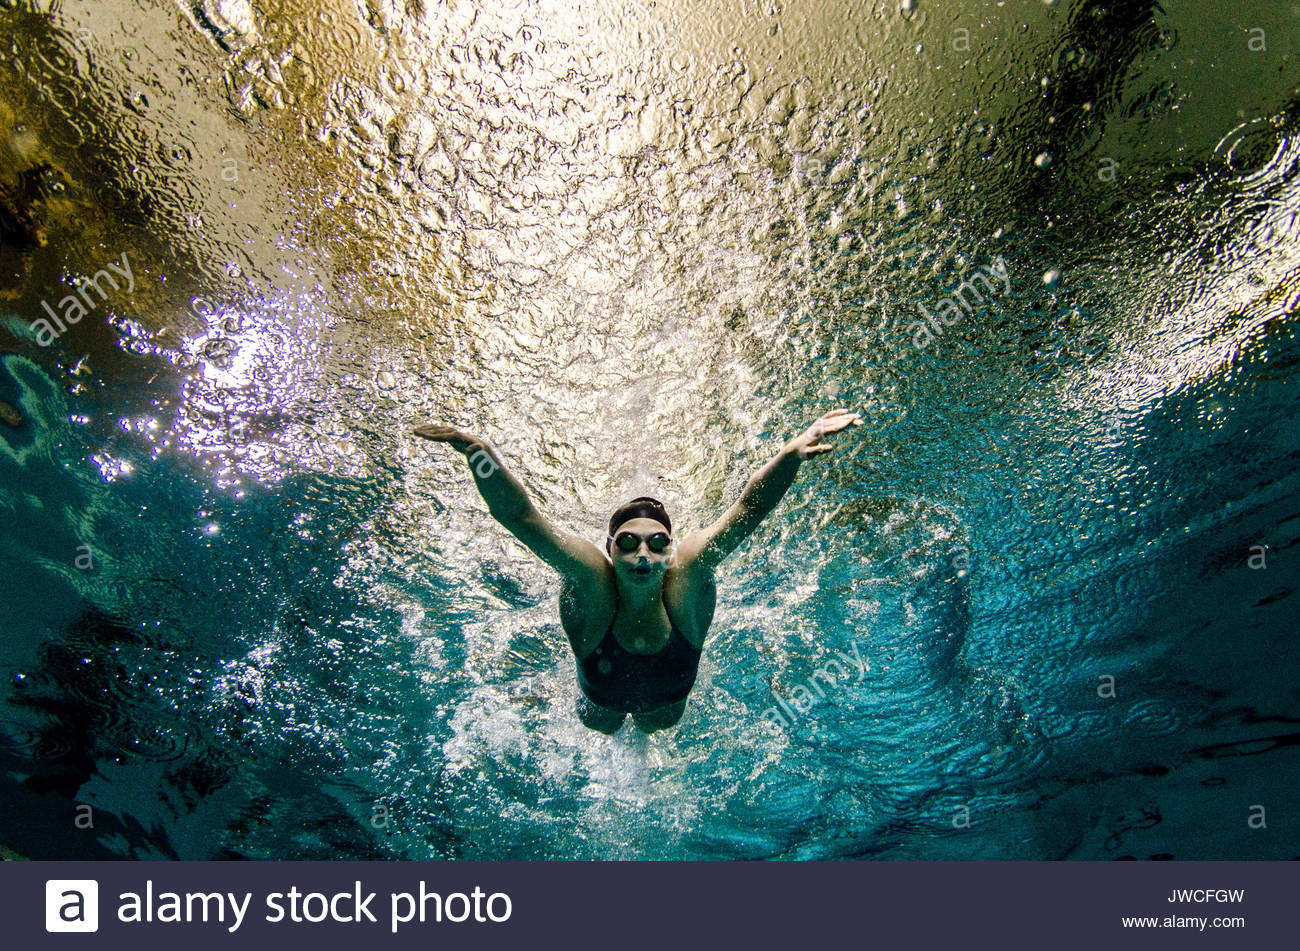 A young woman in a green bathing suit, black swim cap, and goggles, swims the butterfly stroke. - Stock Image